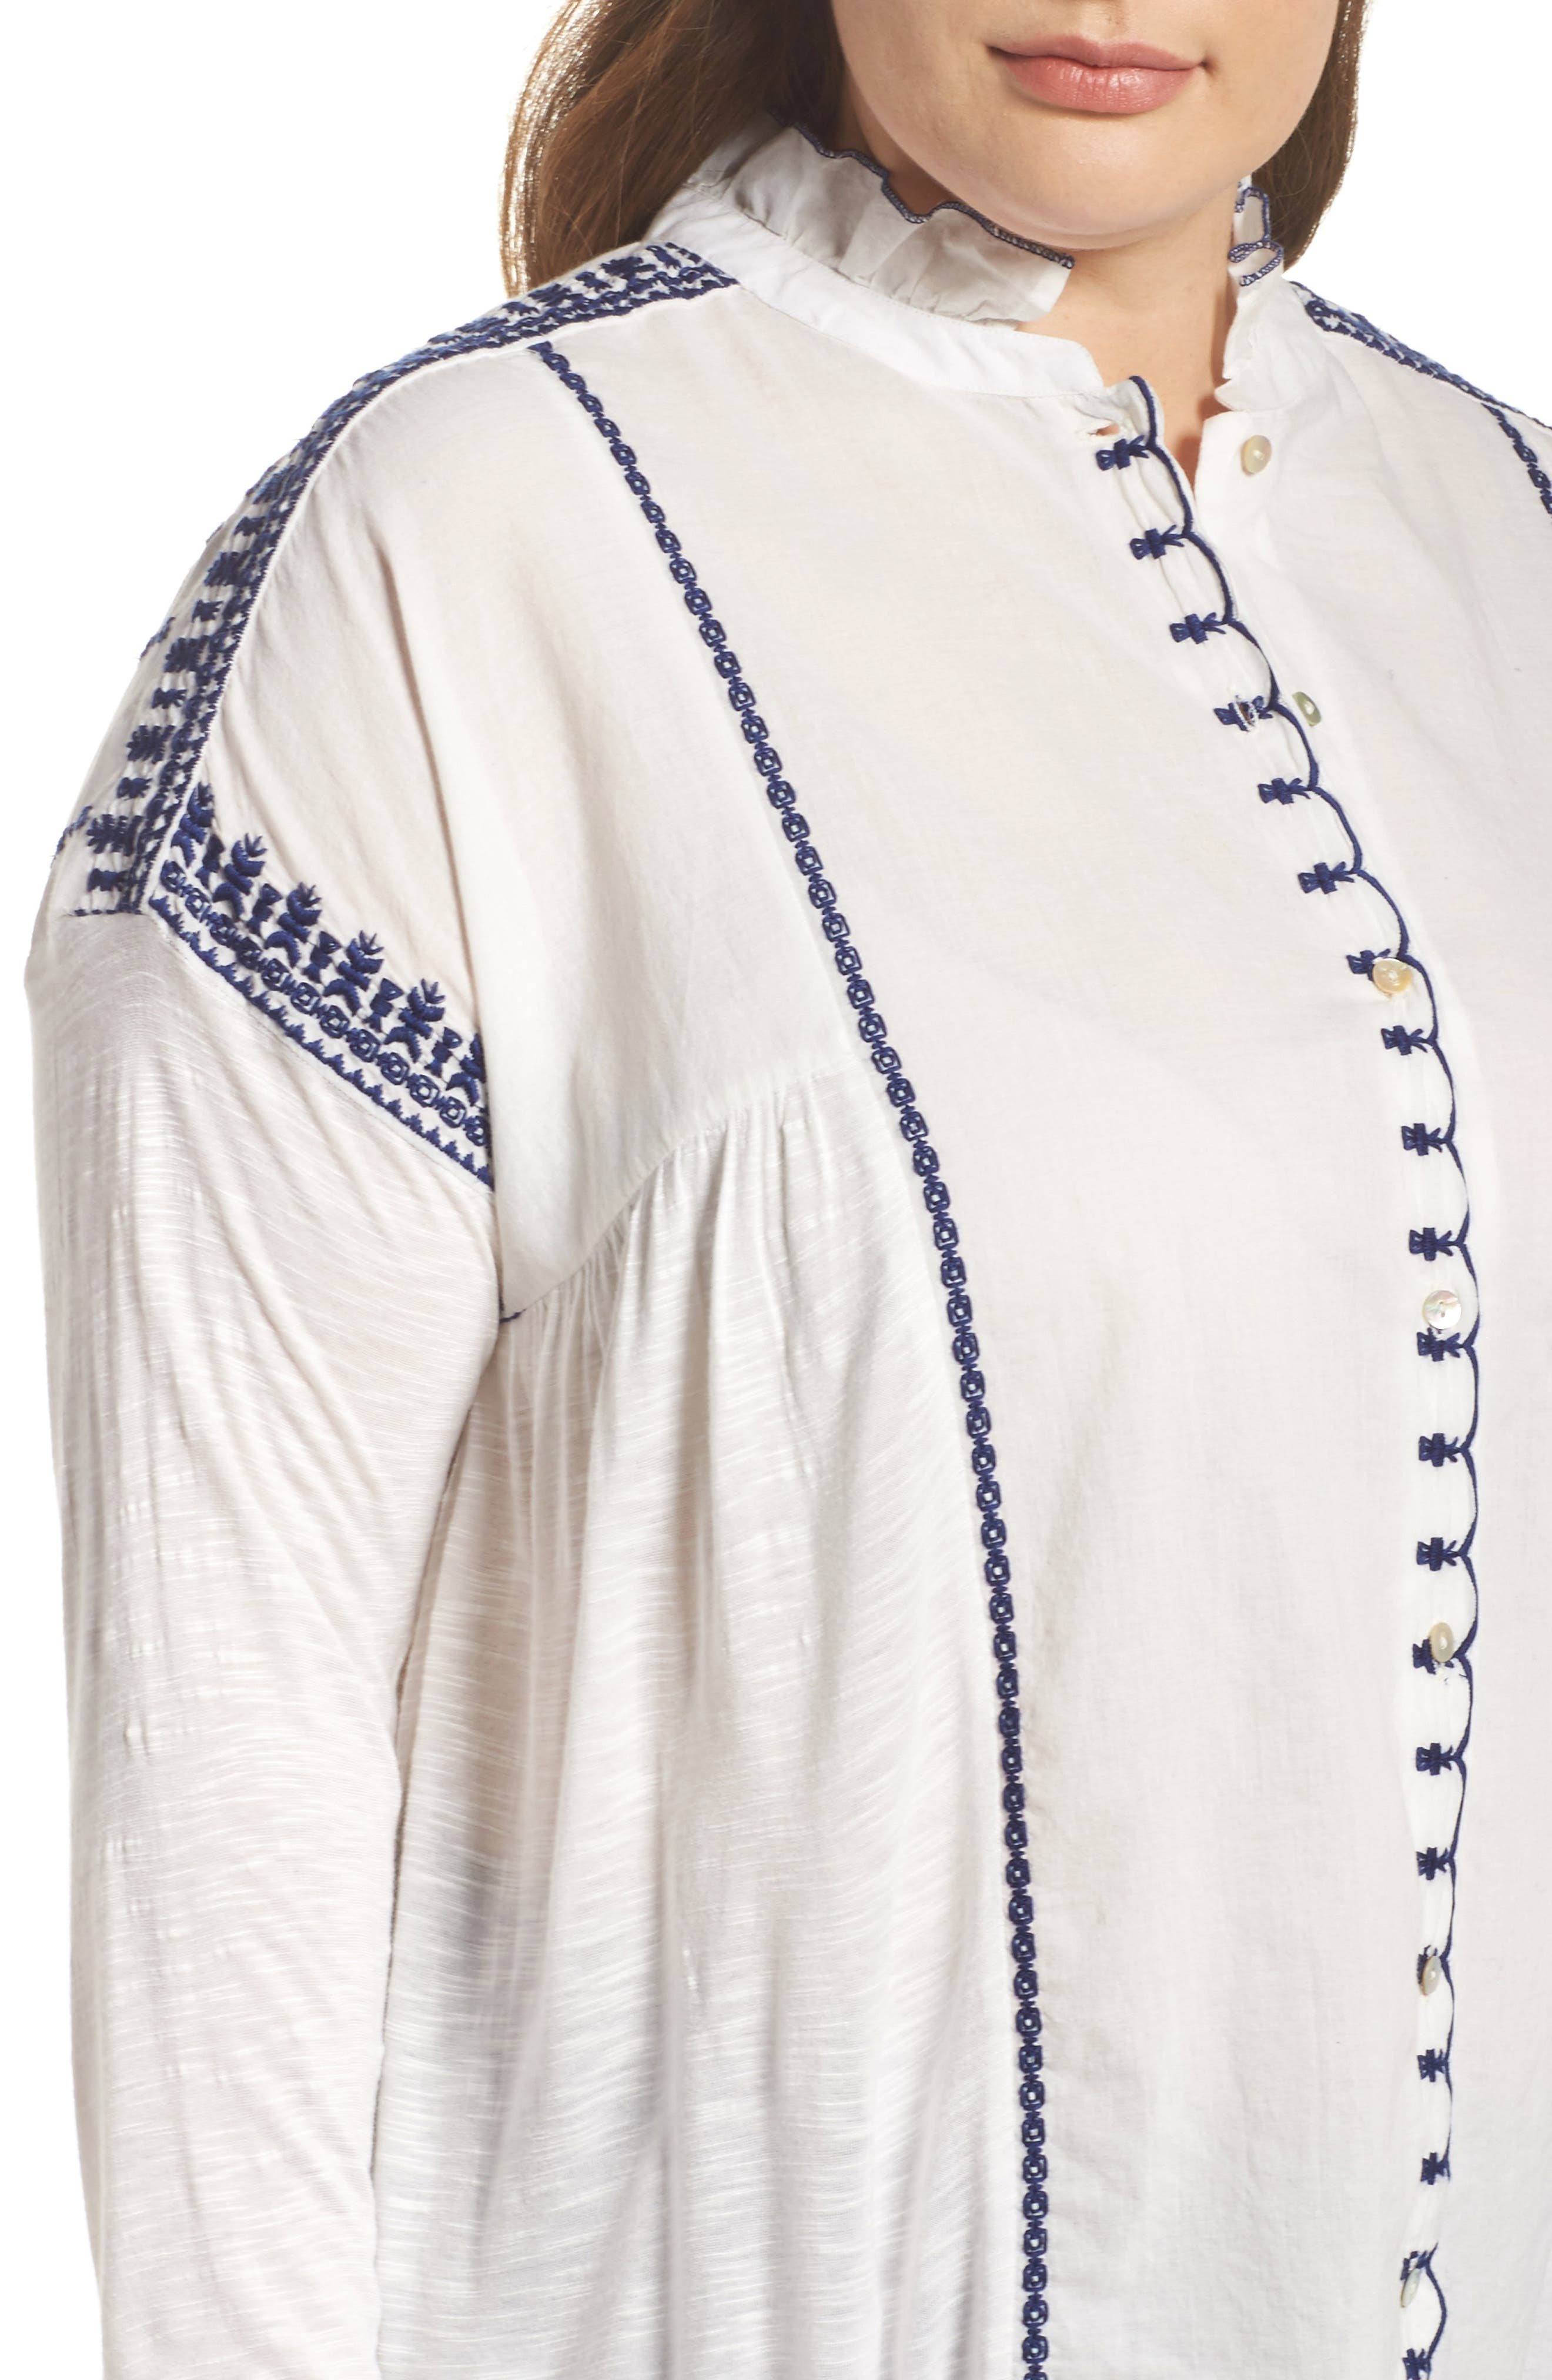 Alternate Image 4  - Lucky Brand Embroidered Mixed Media Top (Plus Size)